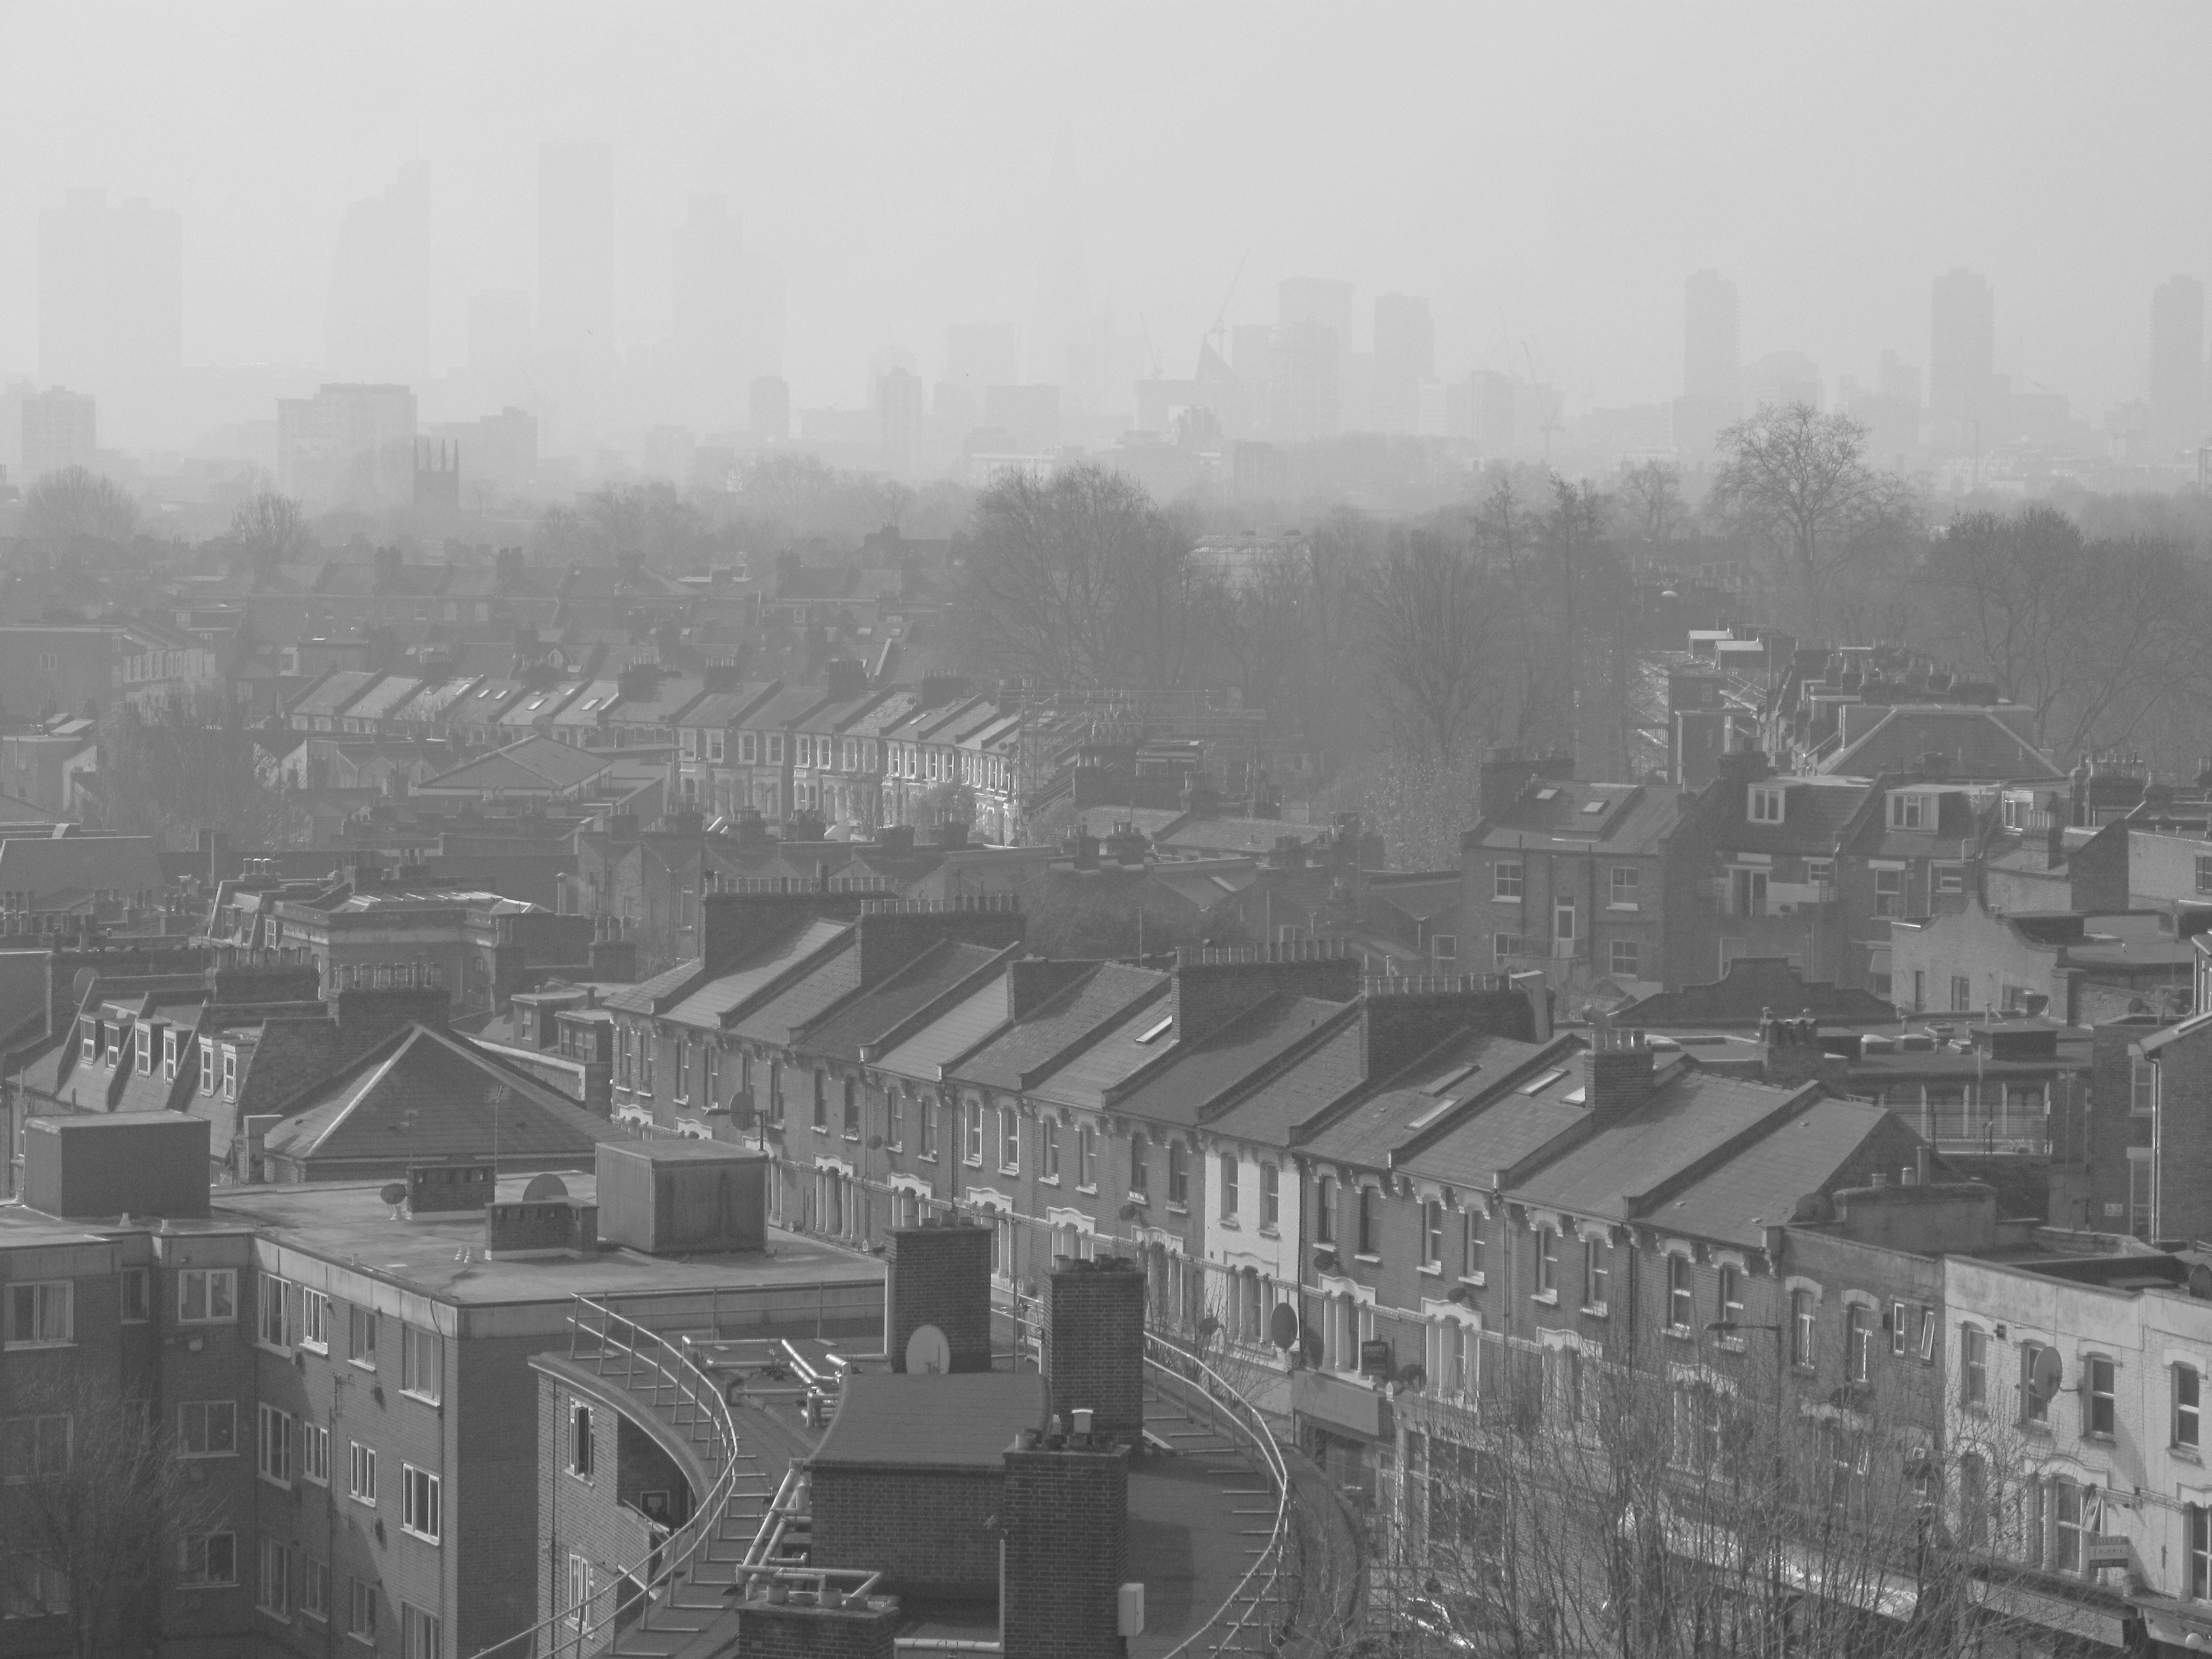 Aburi composites_LPG cylinders_air pollution in London